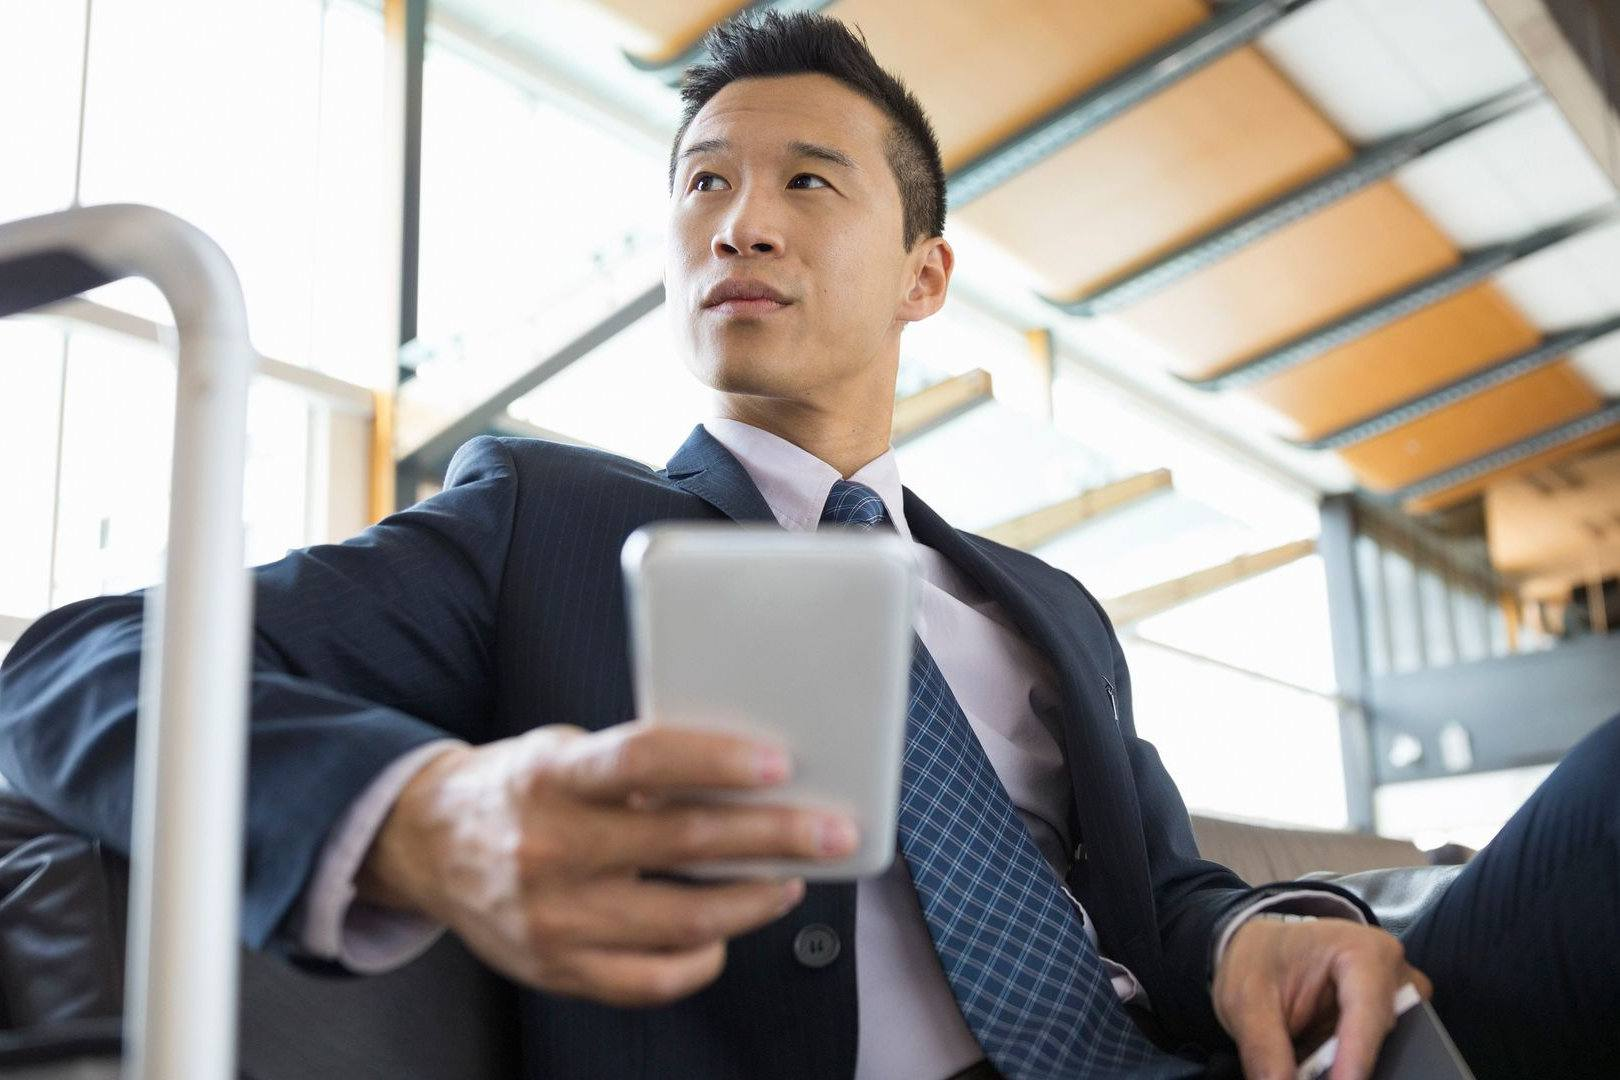 Businessperson on a business trip checking an iPhone on a train